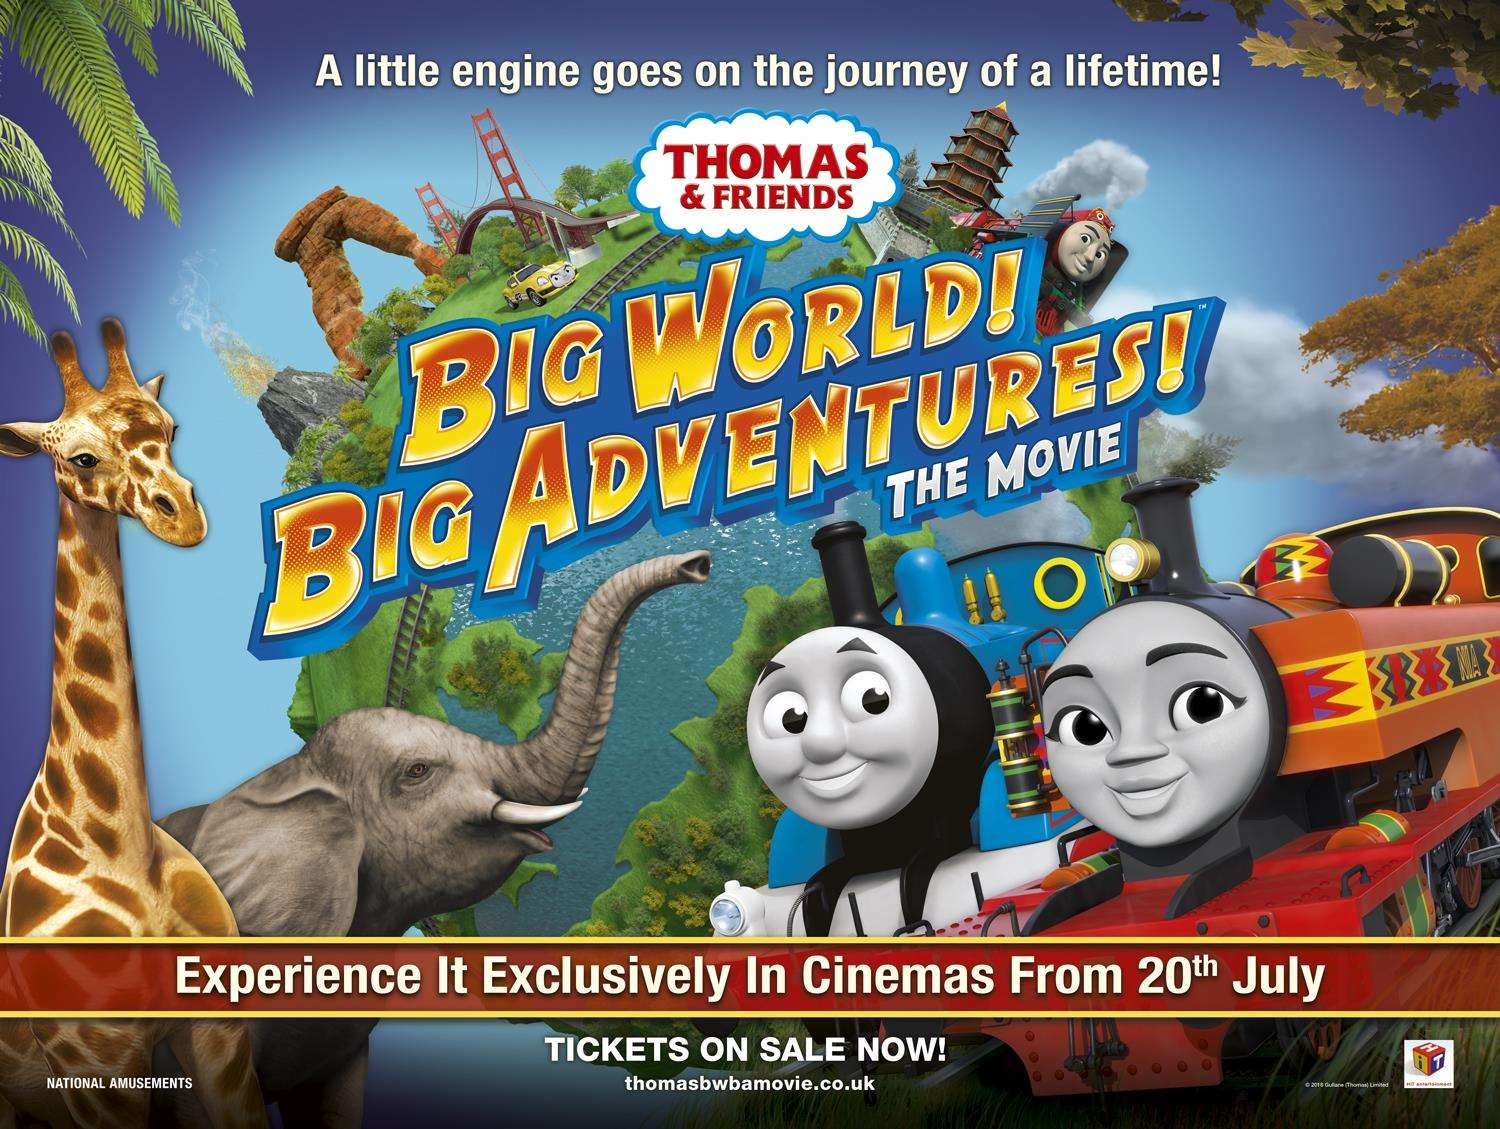 Thomas & Friends. Big World! Big Adventures! Out on July 20.